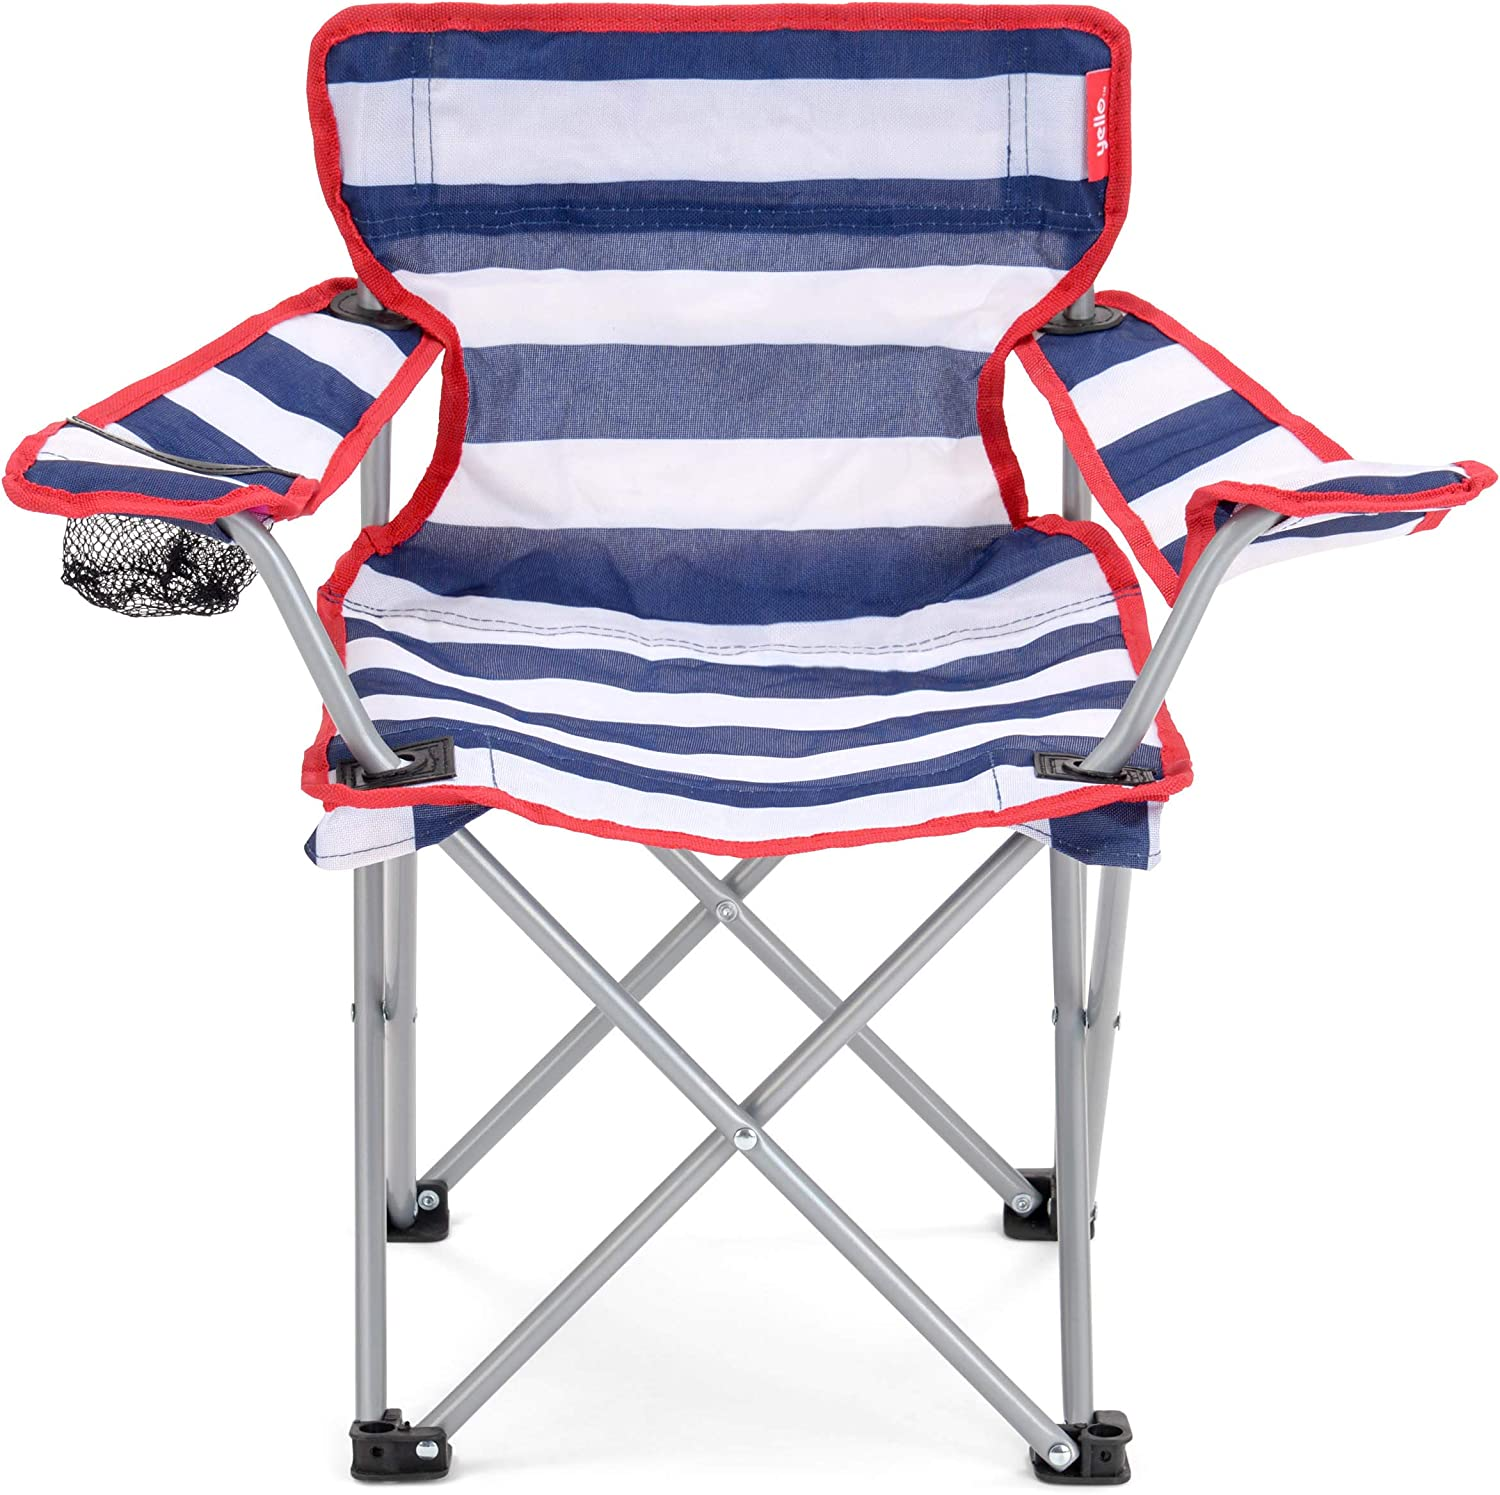 Yello Folding Beach Chair Silla de Camping 53 x 35 x 35 cm Oxford Rayas Azul//Blancas